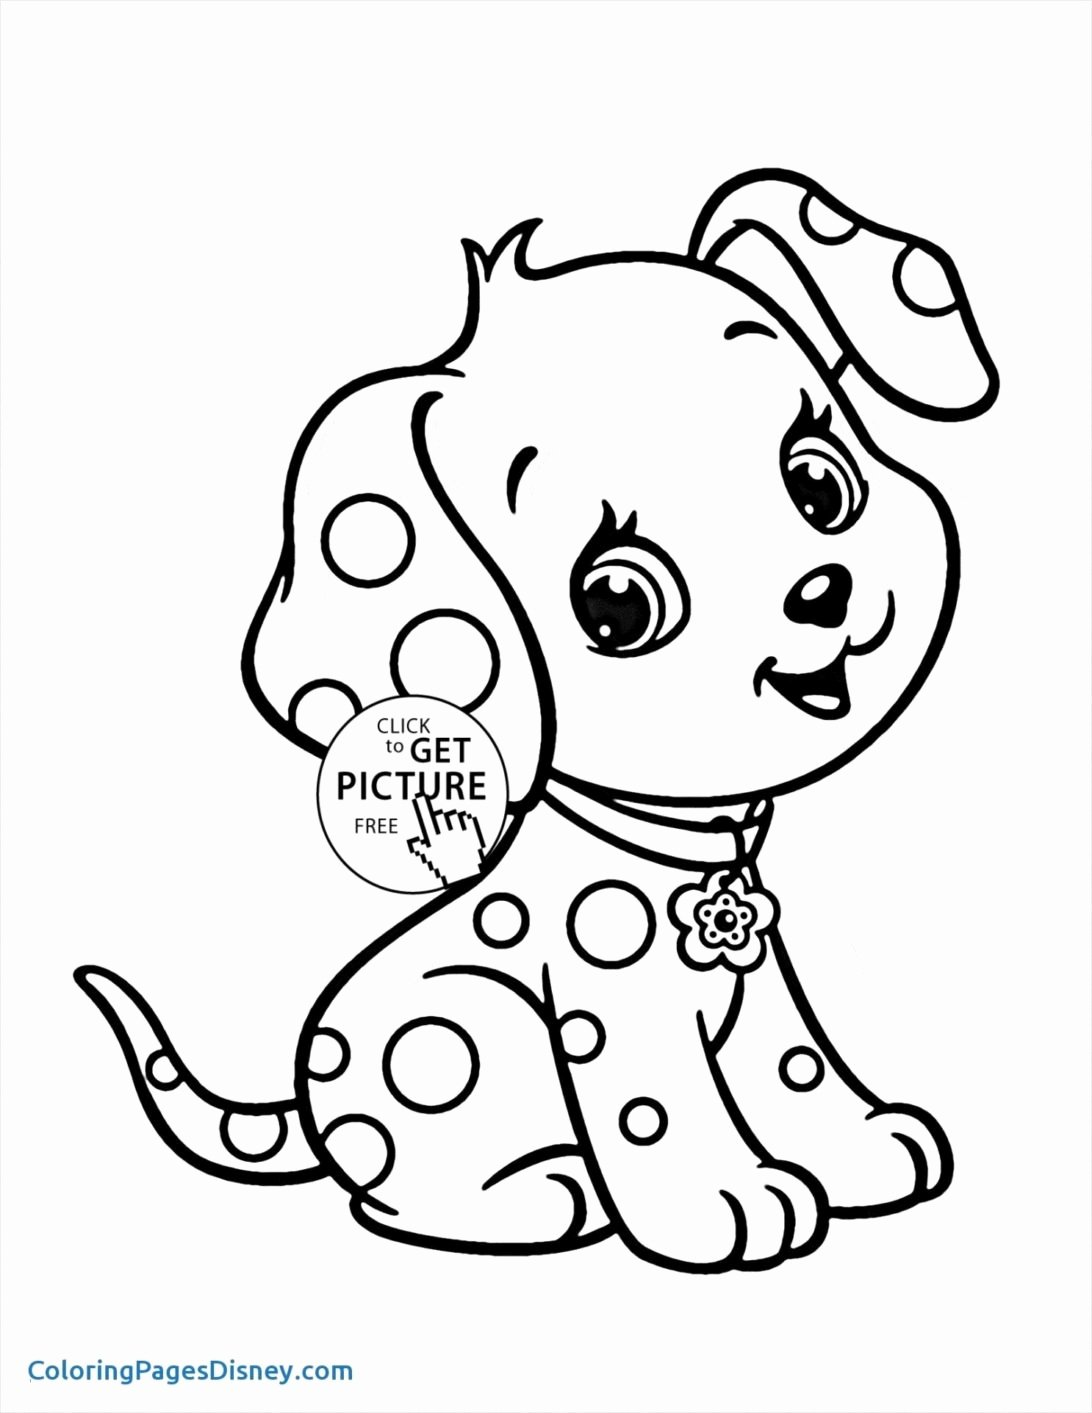 Free Printable Colouring Worksheets for Preschoolers Kids Free Printable Coloring Worksheets for Kindergarten Fun